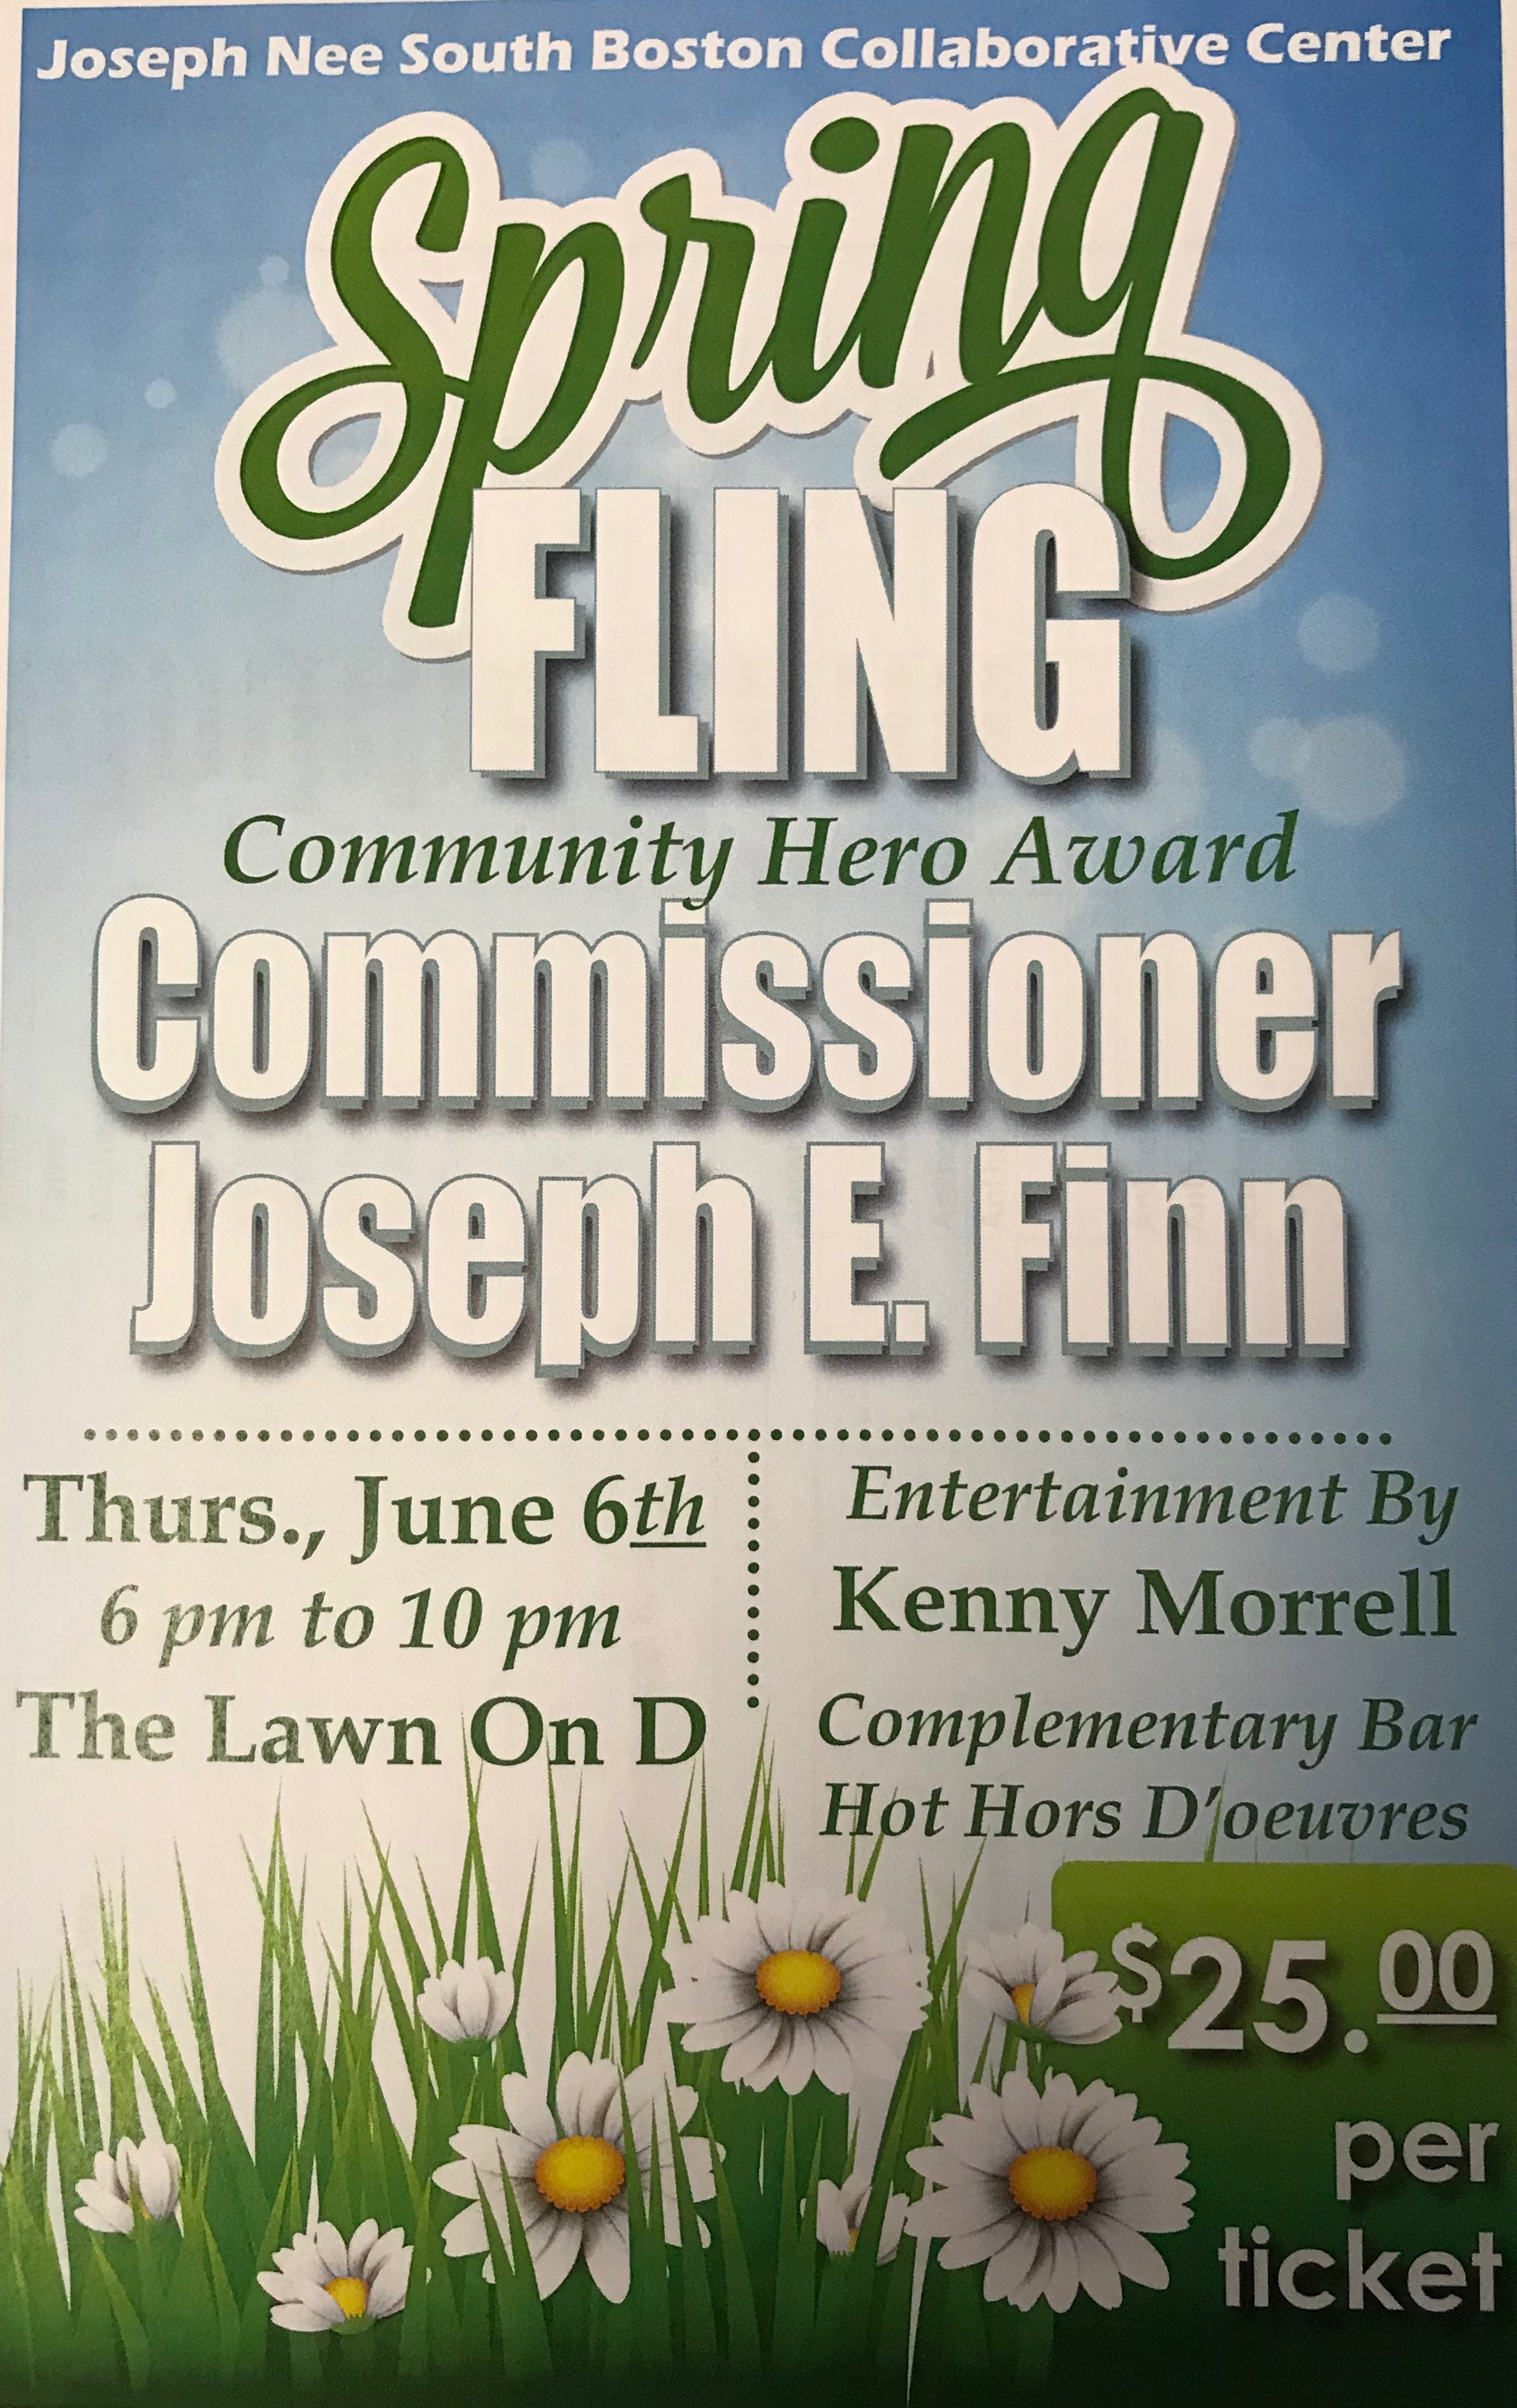 The Lawn on D Spring Fling - Join us for the Joseph Nee South Boston Collaborative Center's spring fundraiser at the beautiful Lawn on D. The event will feature the presentation of the Community Hero Award.Additional highlights include: Entertainment by Kenny Morrell, a complementary bar, hot hors d'oeuvres, raffles and more! Come support the community and celebrate springtime in South Boston!Thursday, June 6th, 6-10pm$25 per ticket!